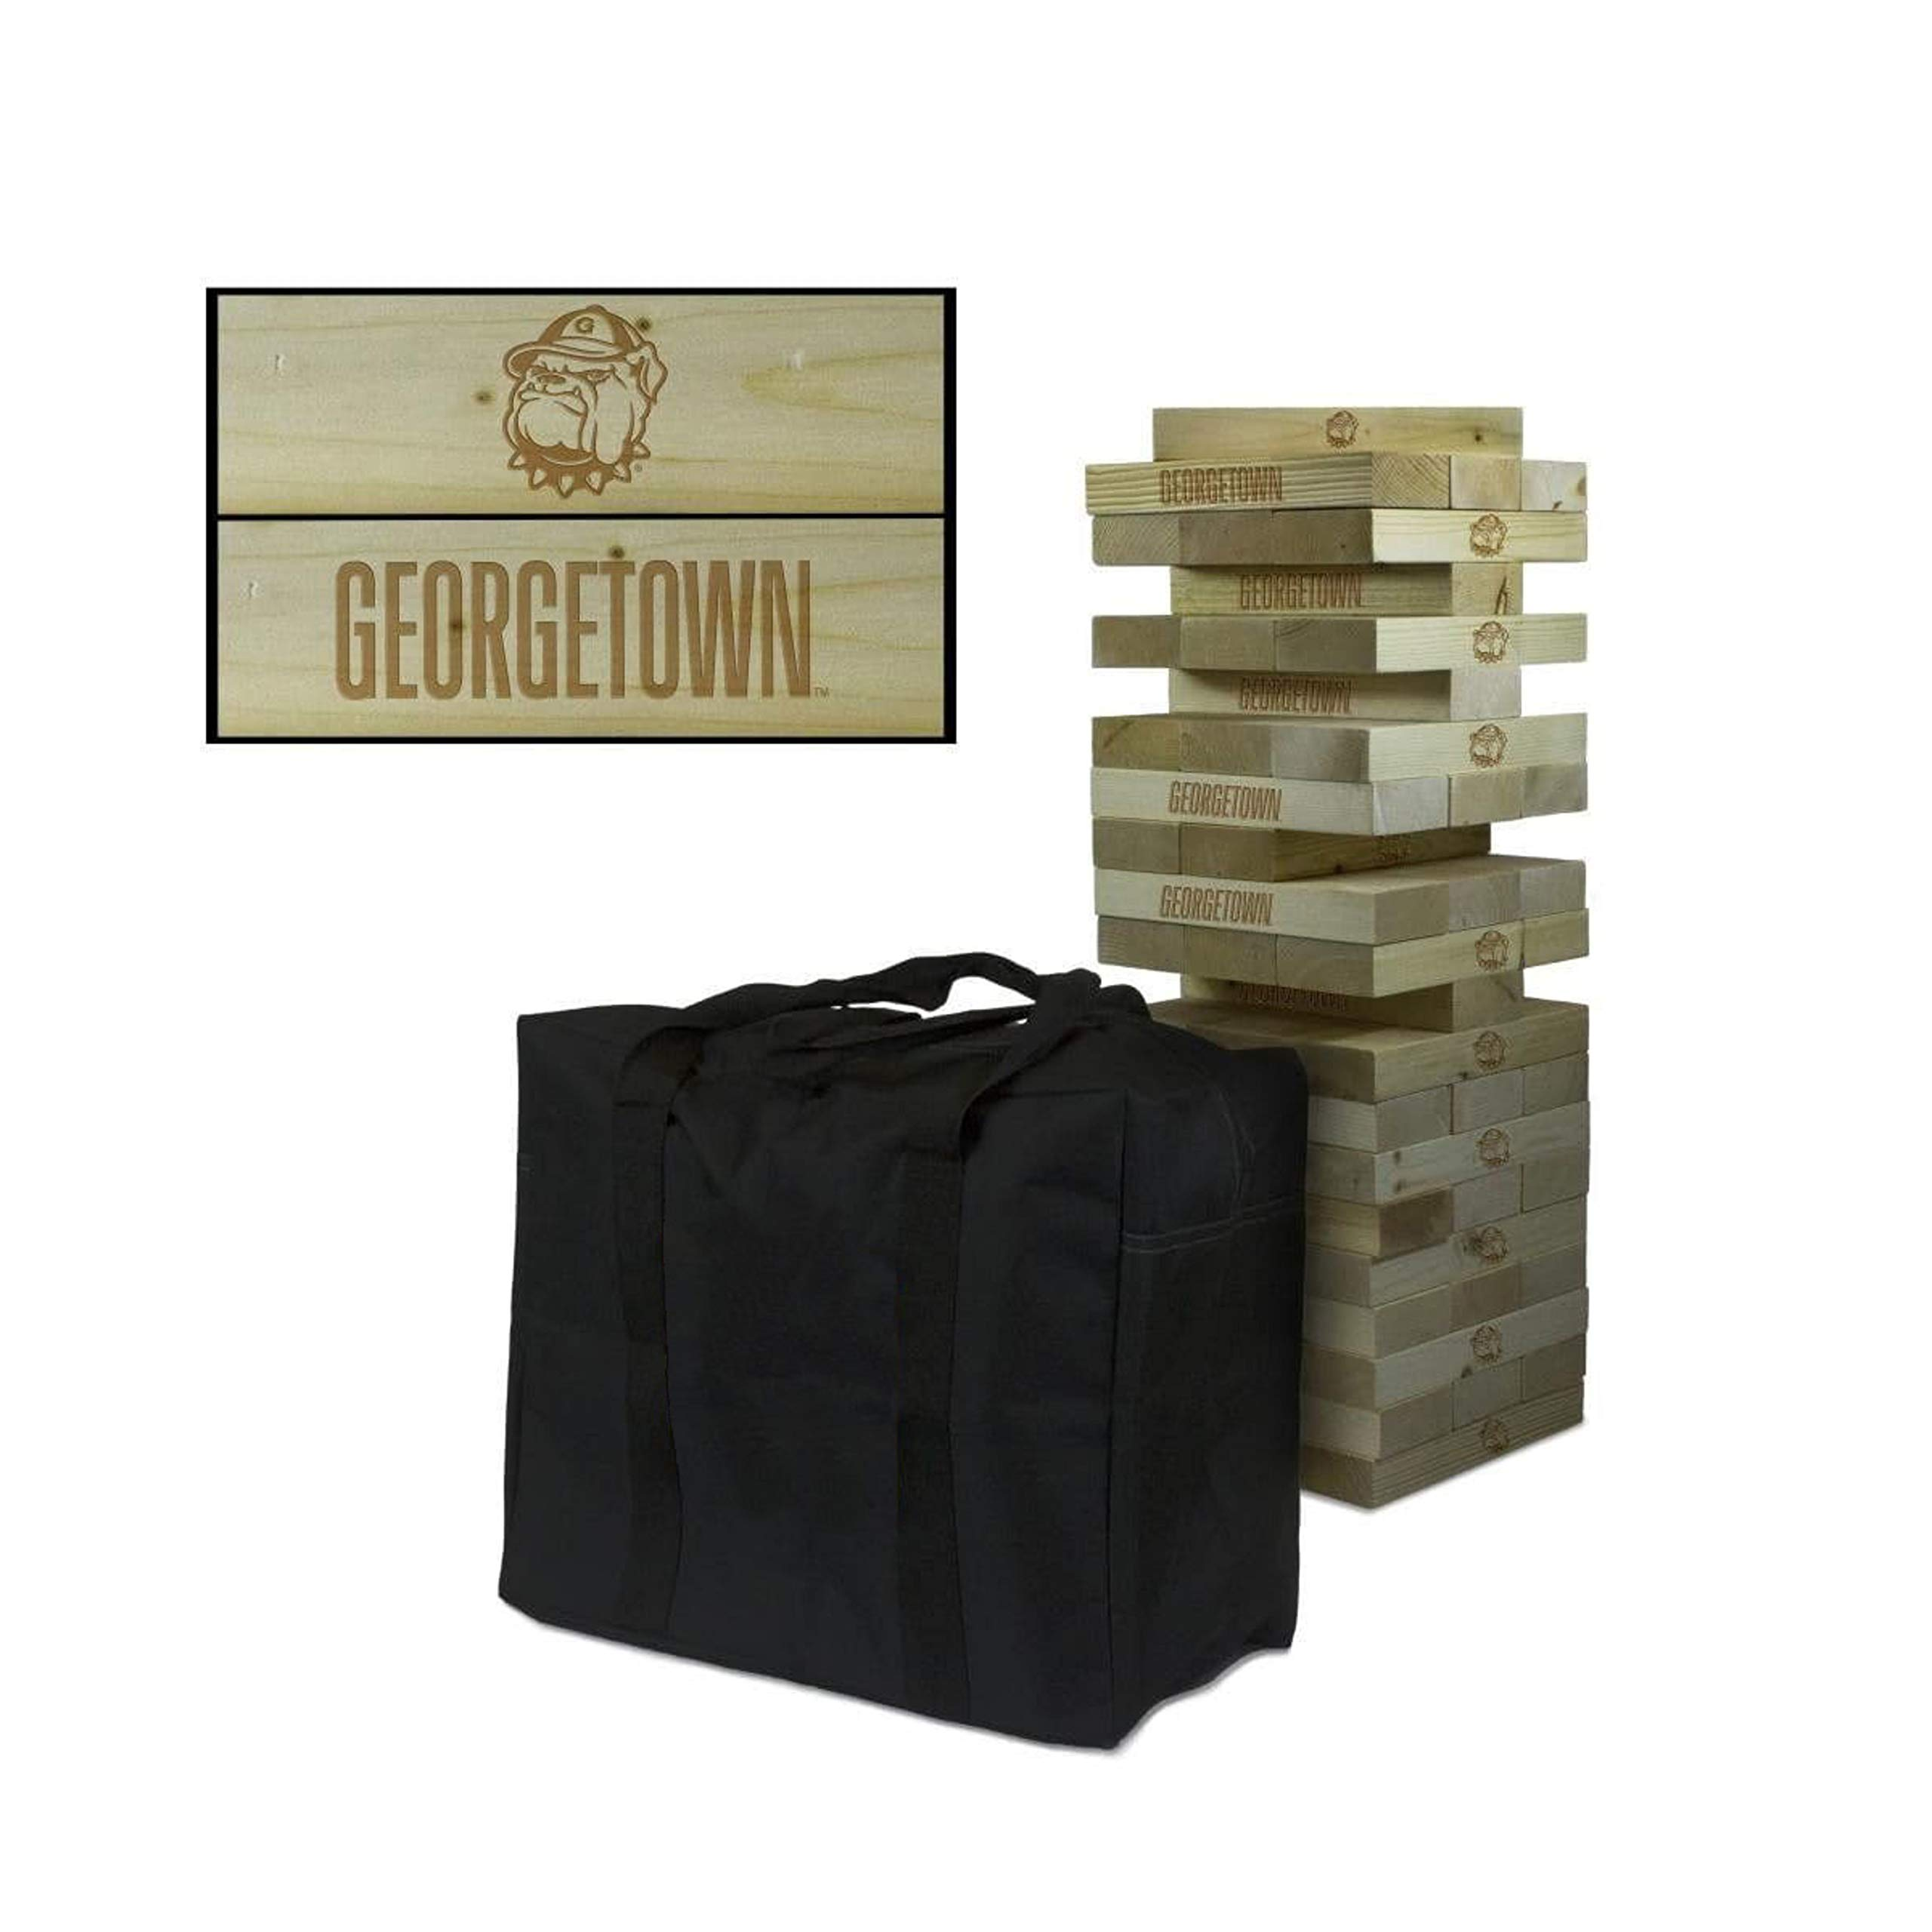 Victory Tailgate NCAA Giant Wooden Tumble Tower Game Set - Georgetown Hoyas by Victory Tailgate